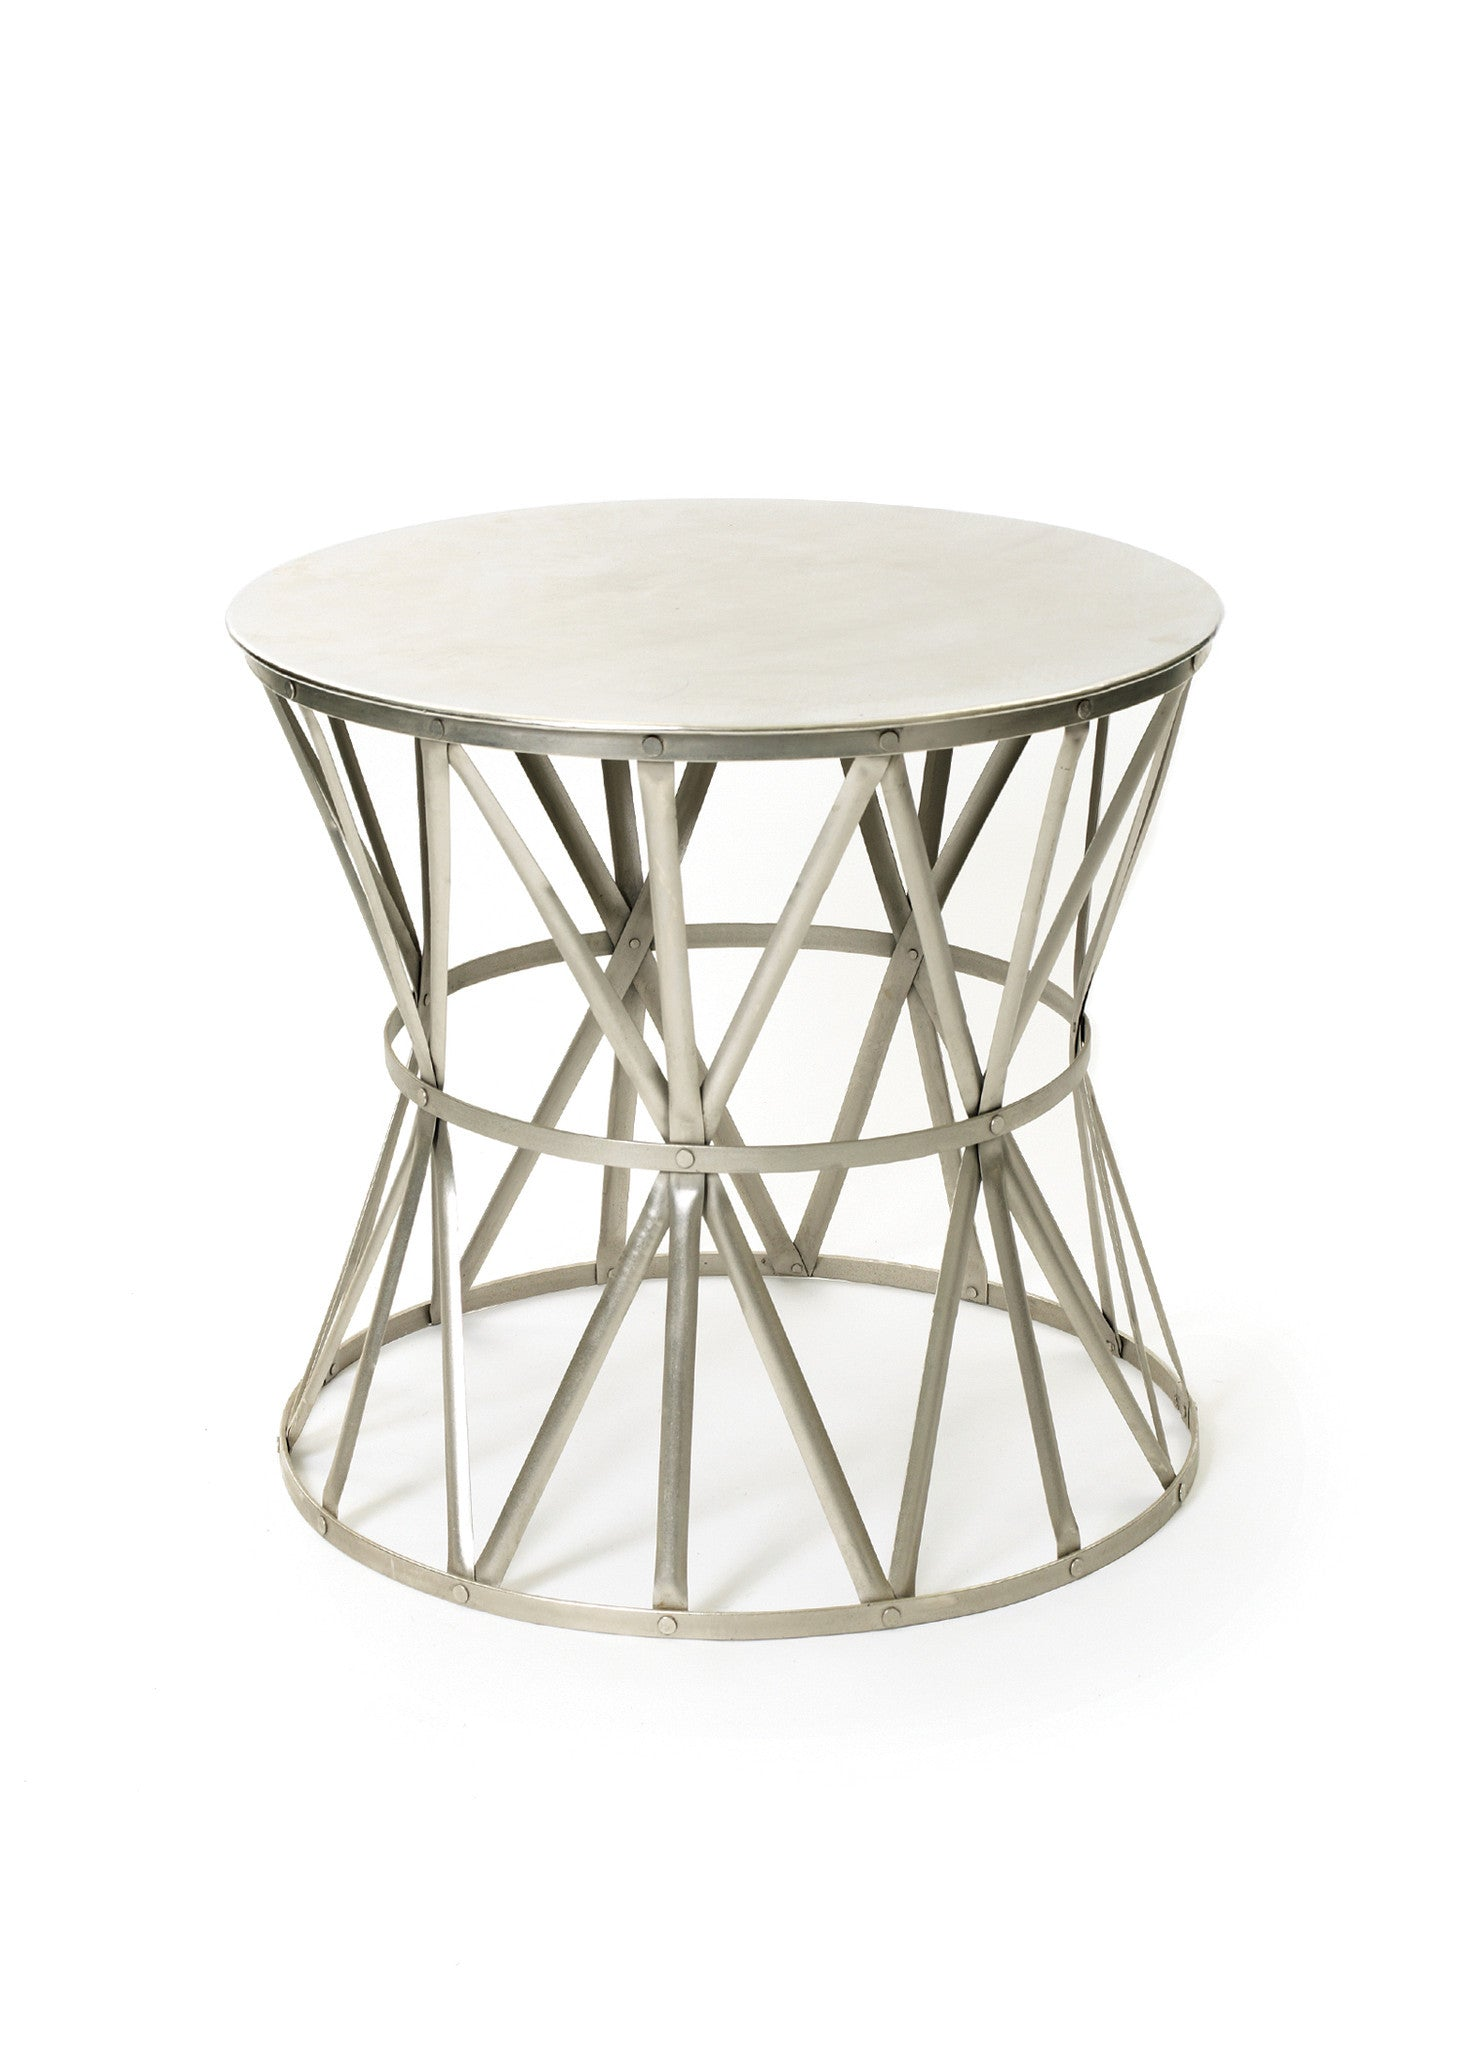 Slim round end table modern accent table with drawer calvin end table - Angle Round Side Table In Polished Nickel Steel Side Tables Alan Decor